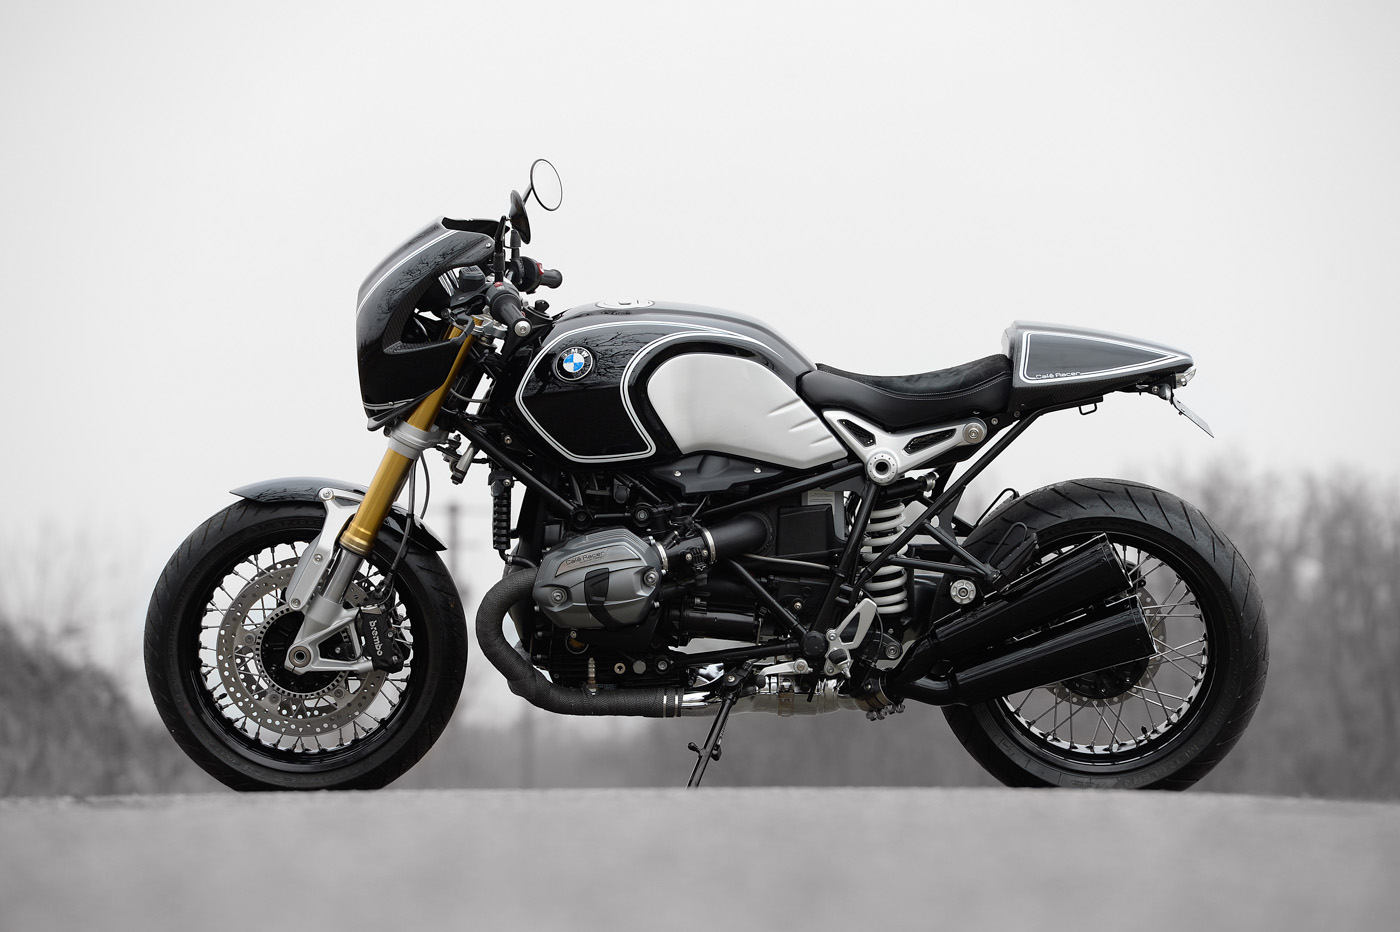 nouveaut 2015 bmw r ninet caf racer boxer design agora moto. Black Bedroom Furniture Sets. Home Design Ideas